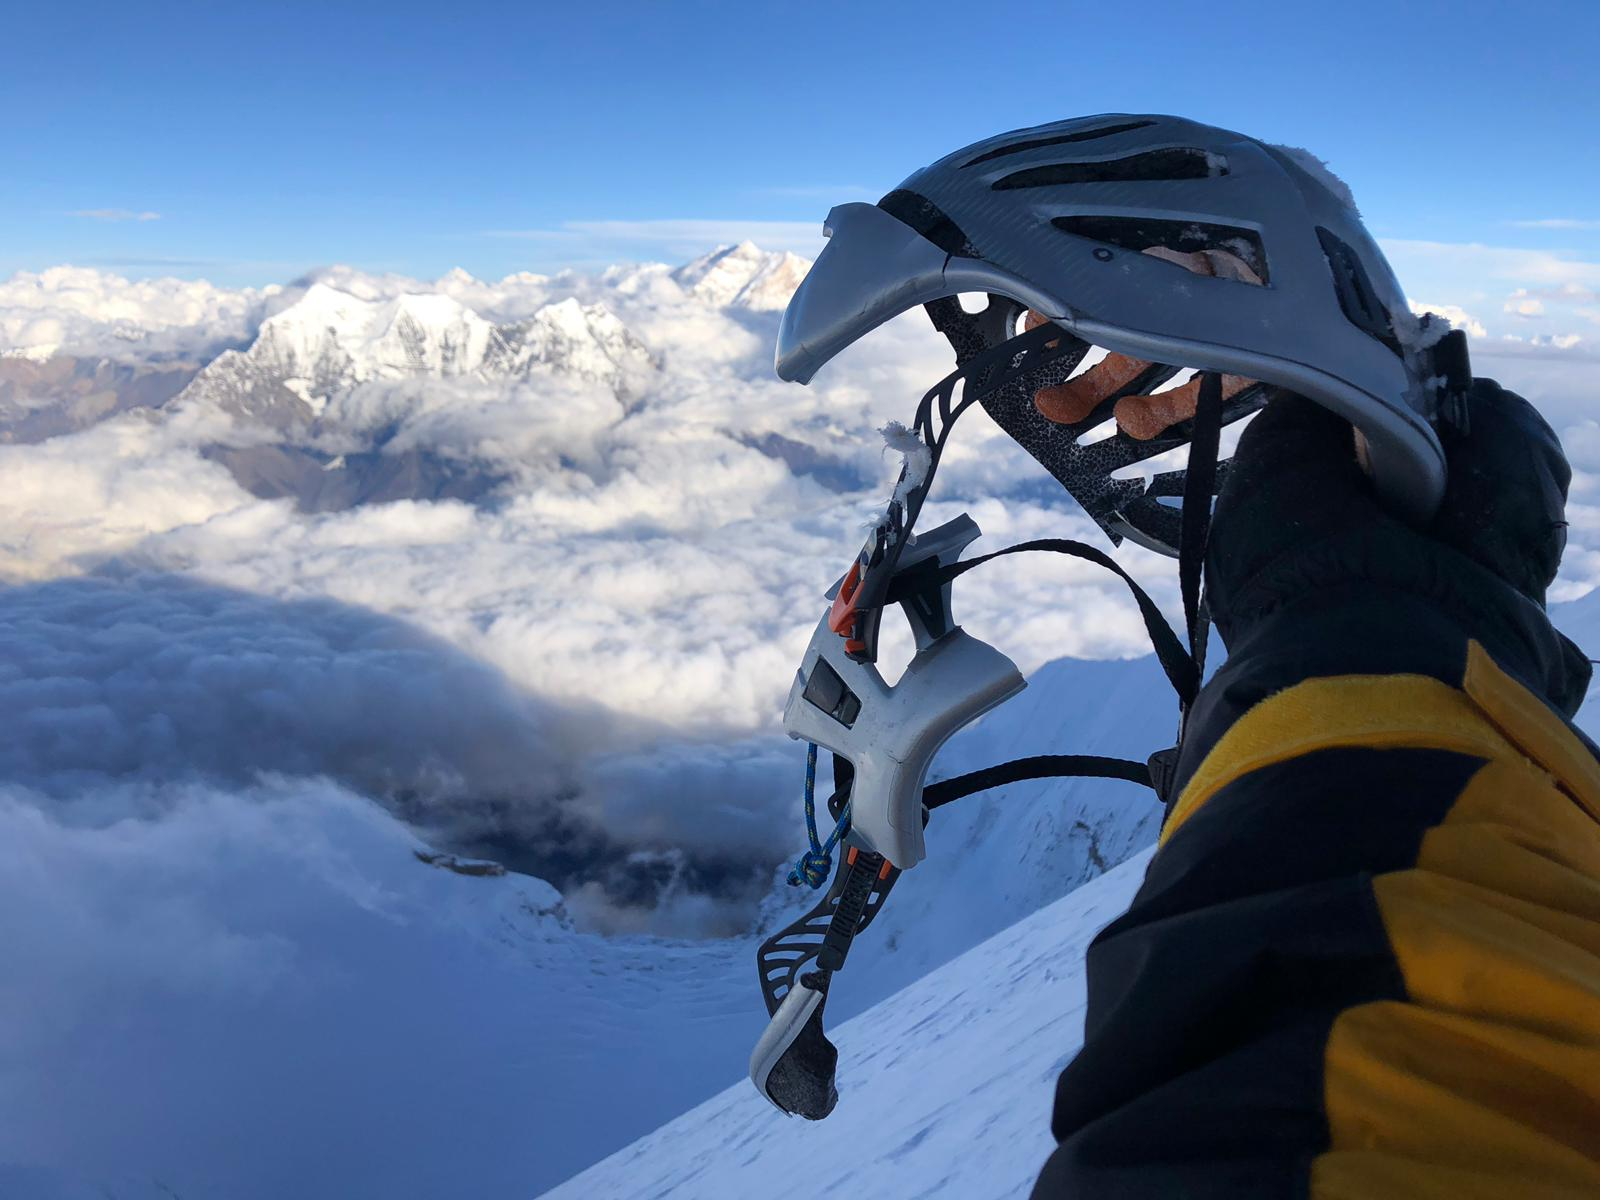 Photo of Dhaulagiri. Moeses Fiamoncini racconta l'incidente a 50 metri dalla vetta